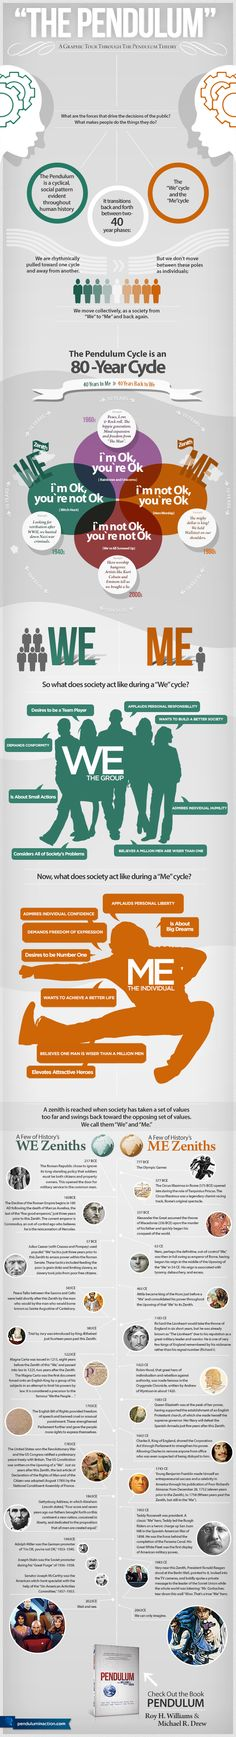 "An infographic about the ""Pendulum"" cycle a book about the We vs. Me generations.   I just got the book and it looks great. We are entering a WE cycle for the next 30-35 years."